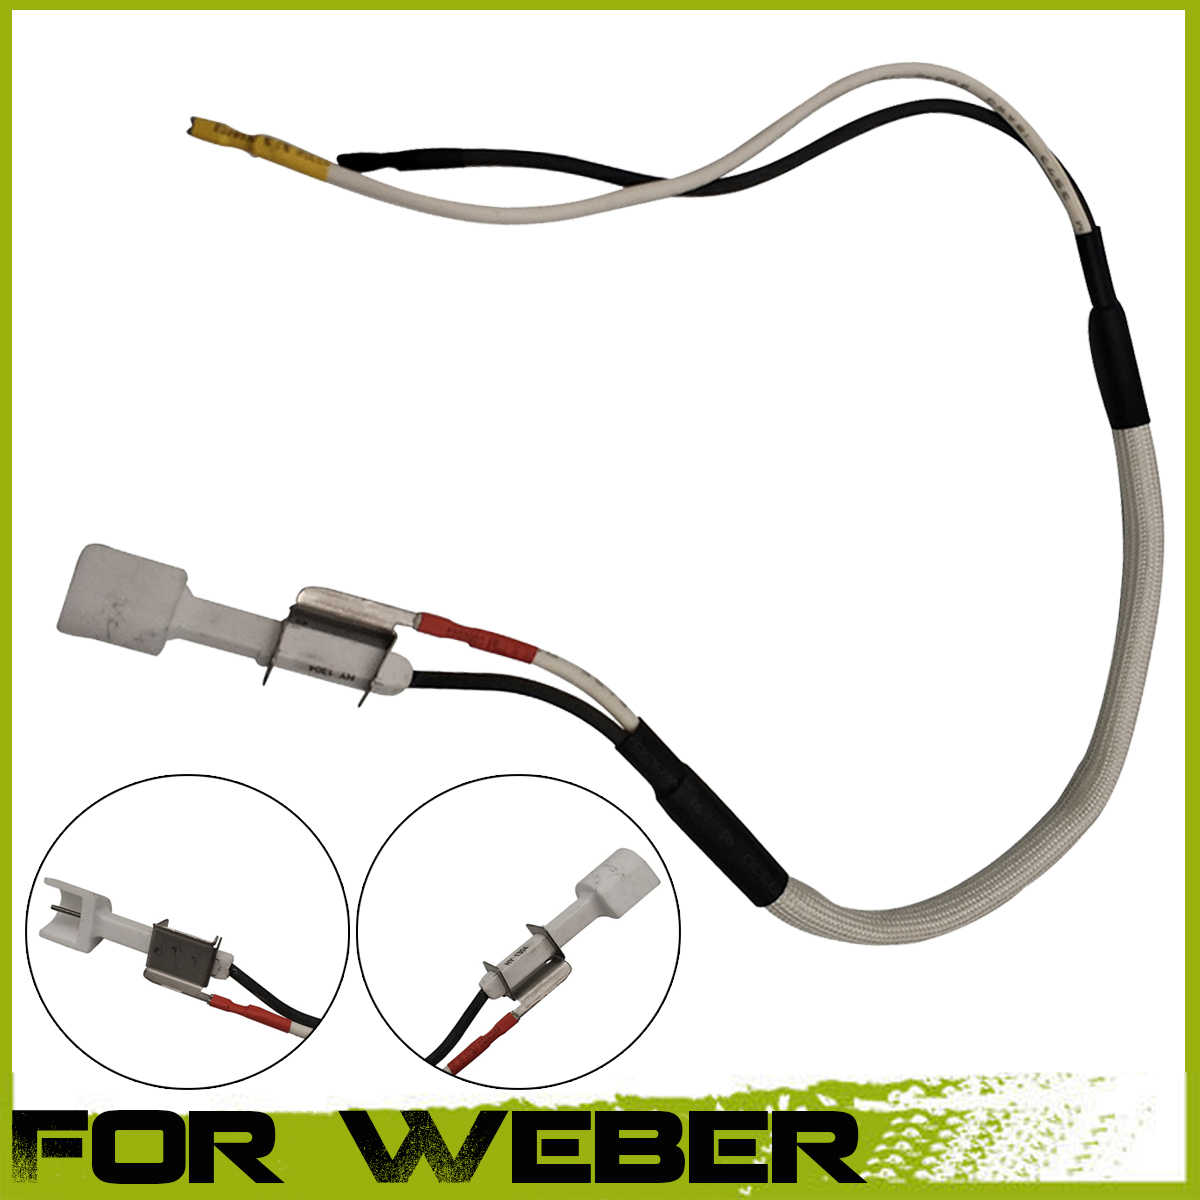 NEW 45cm Igniter Accessory Piezo Spark Ignition Set for Weber BBQ Grill Heater Heater Radiator Grill Cooker BBQ